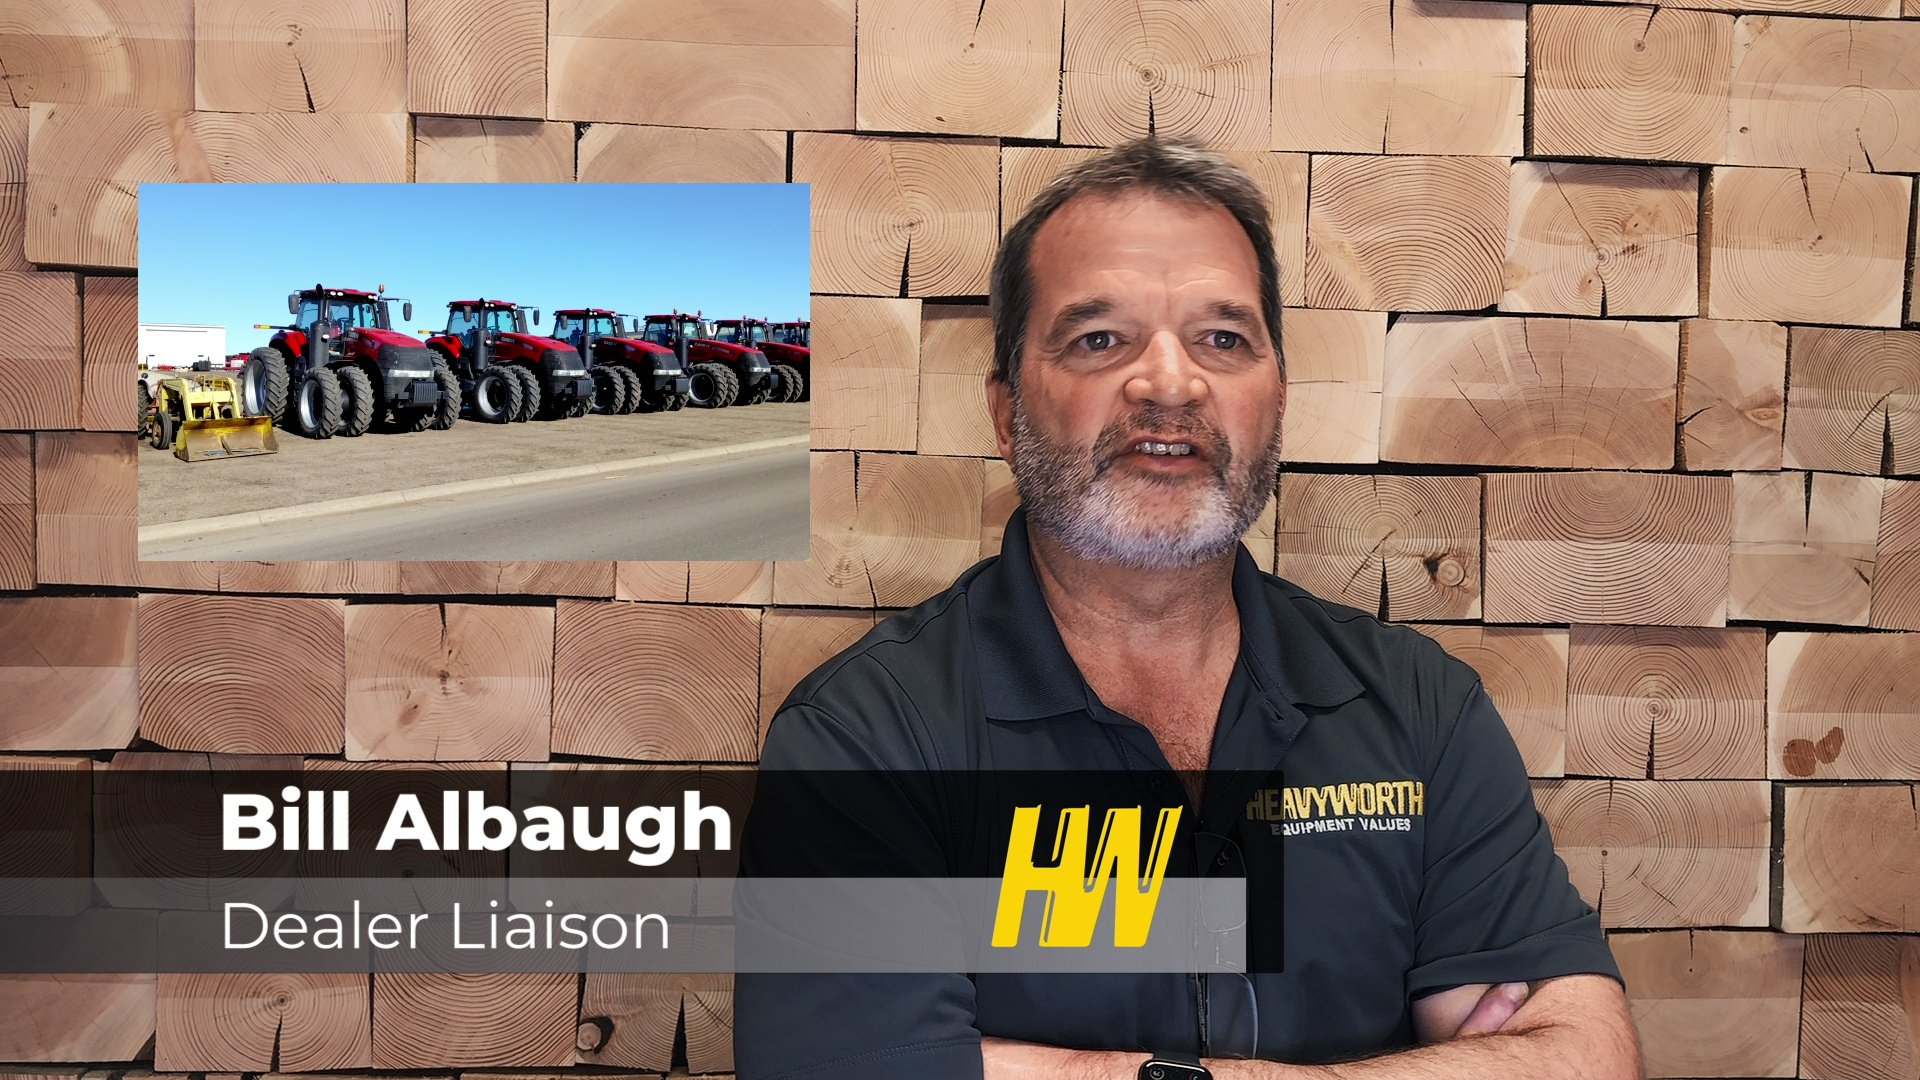 Bill Albaugh, dealer liaison